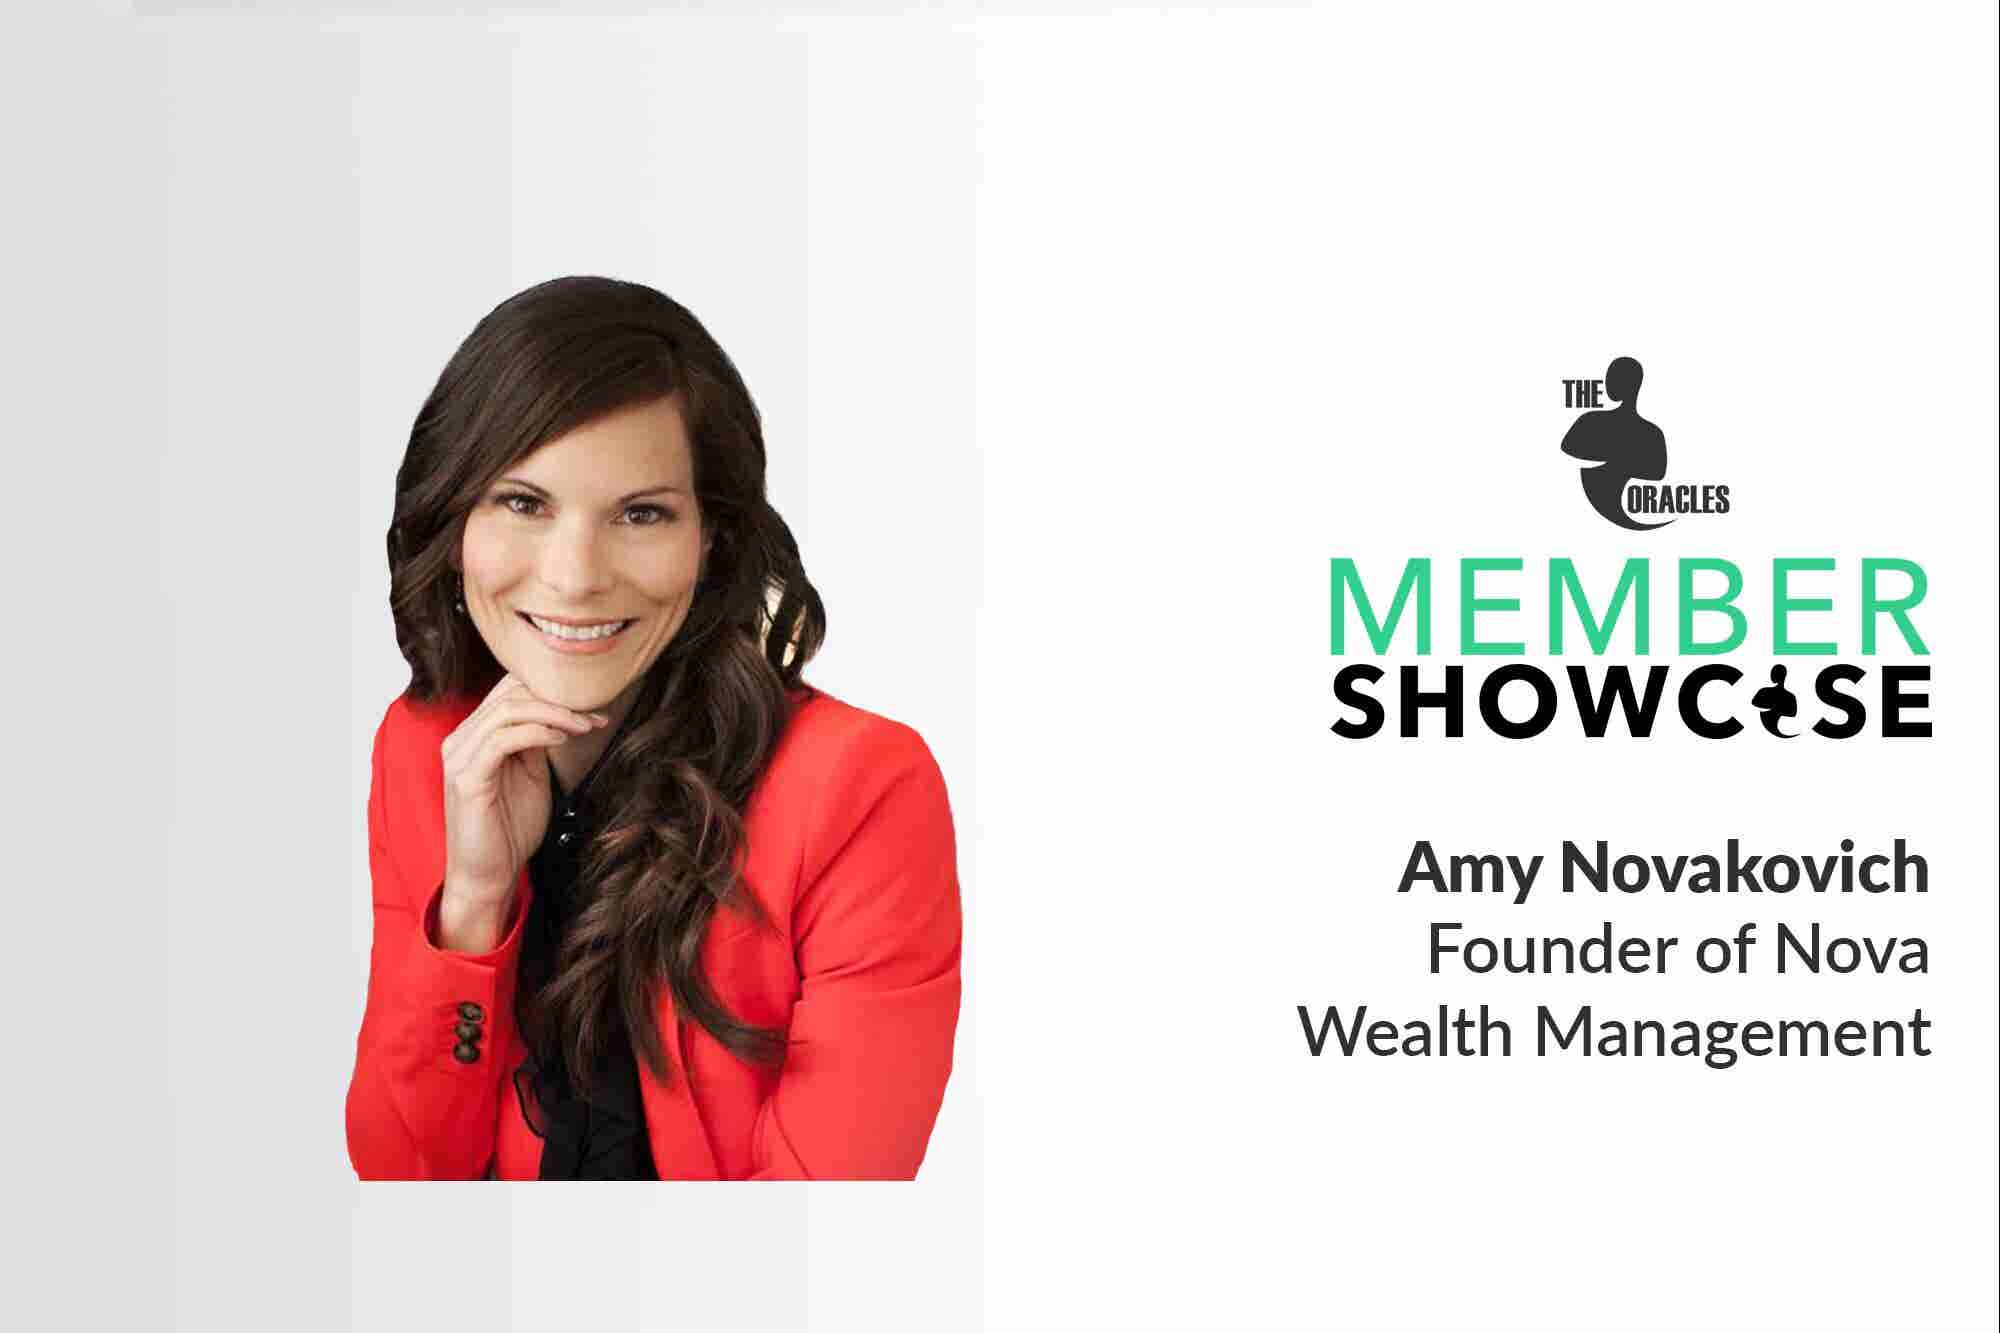 How Amy Novakovich Is Making the Financial Industry More Transparent